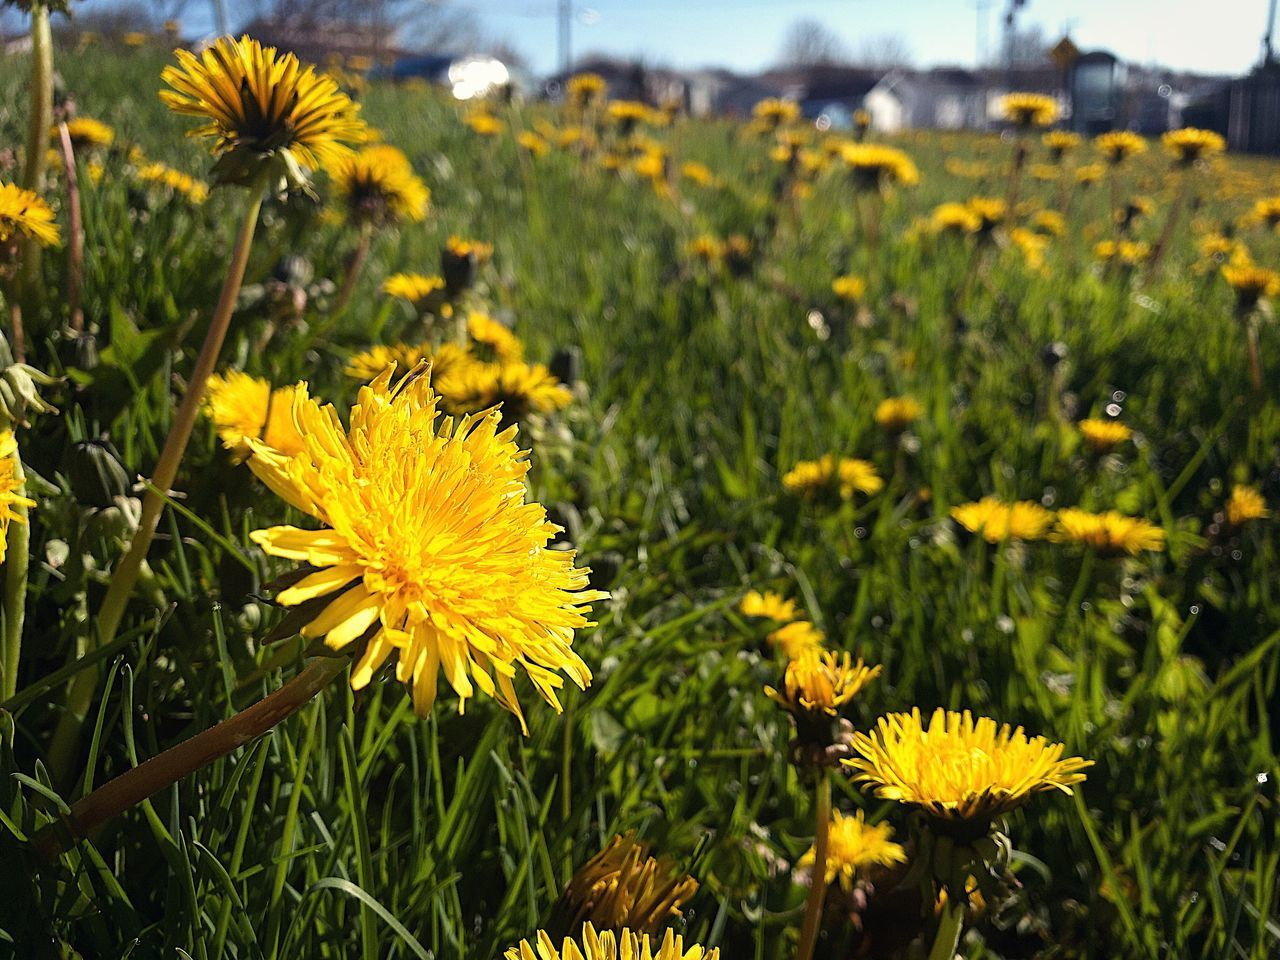 Flower Yellow Nature Growth Petal Plant Freshness Fragility Flower Head Beauty In Nature Blooming Field No People Focus On Foreground Day Green Color Sunflower Outdoors Cosmos Flower Close-up